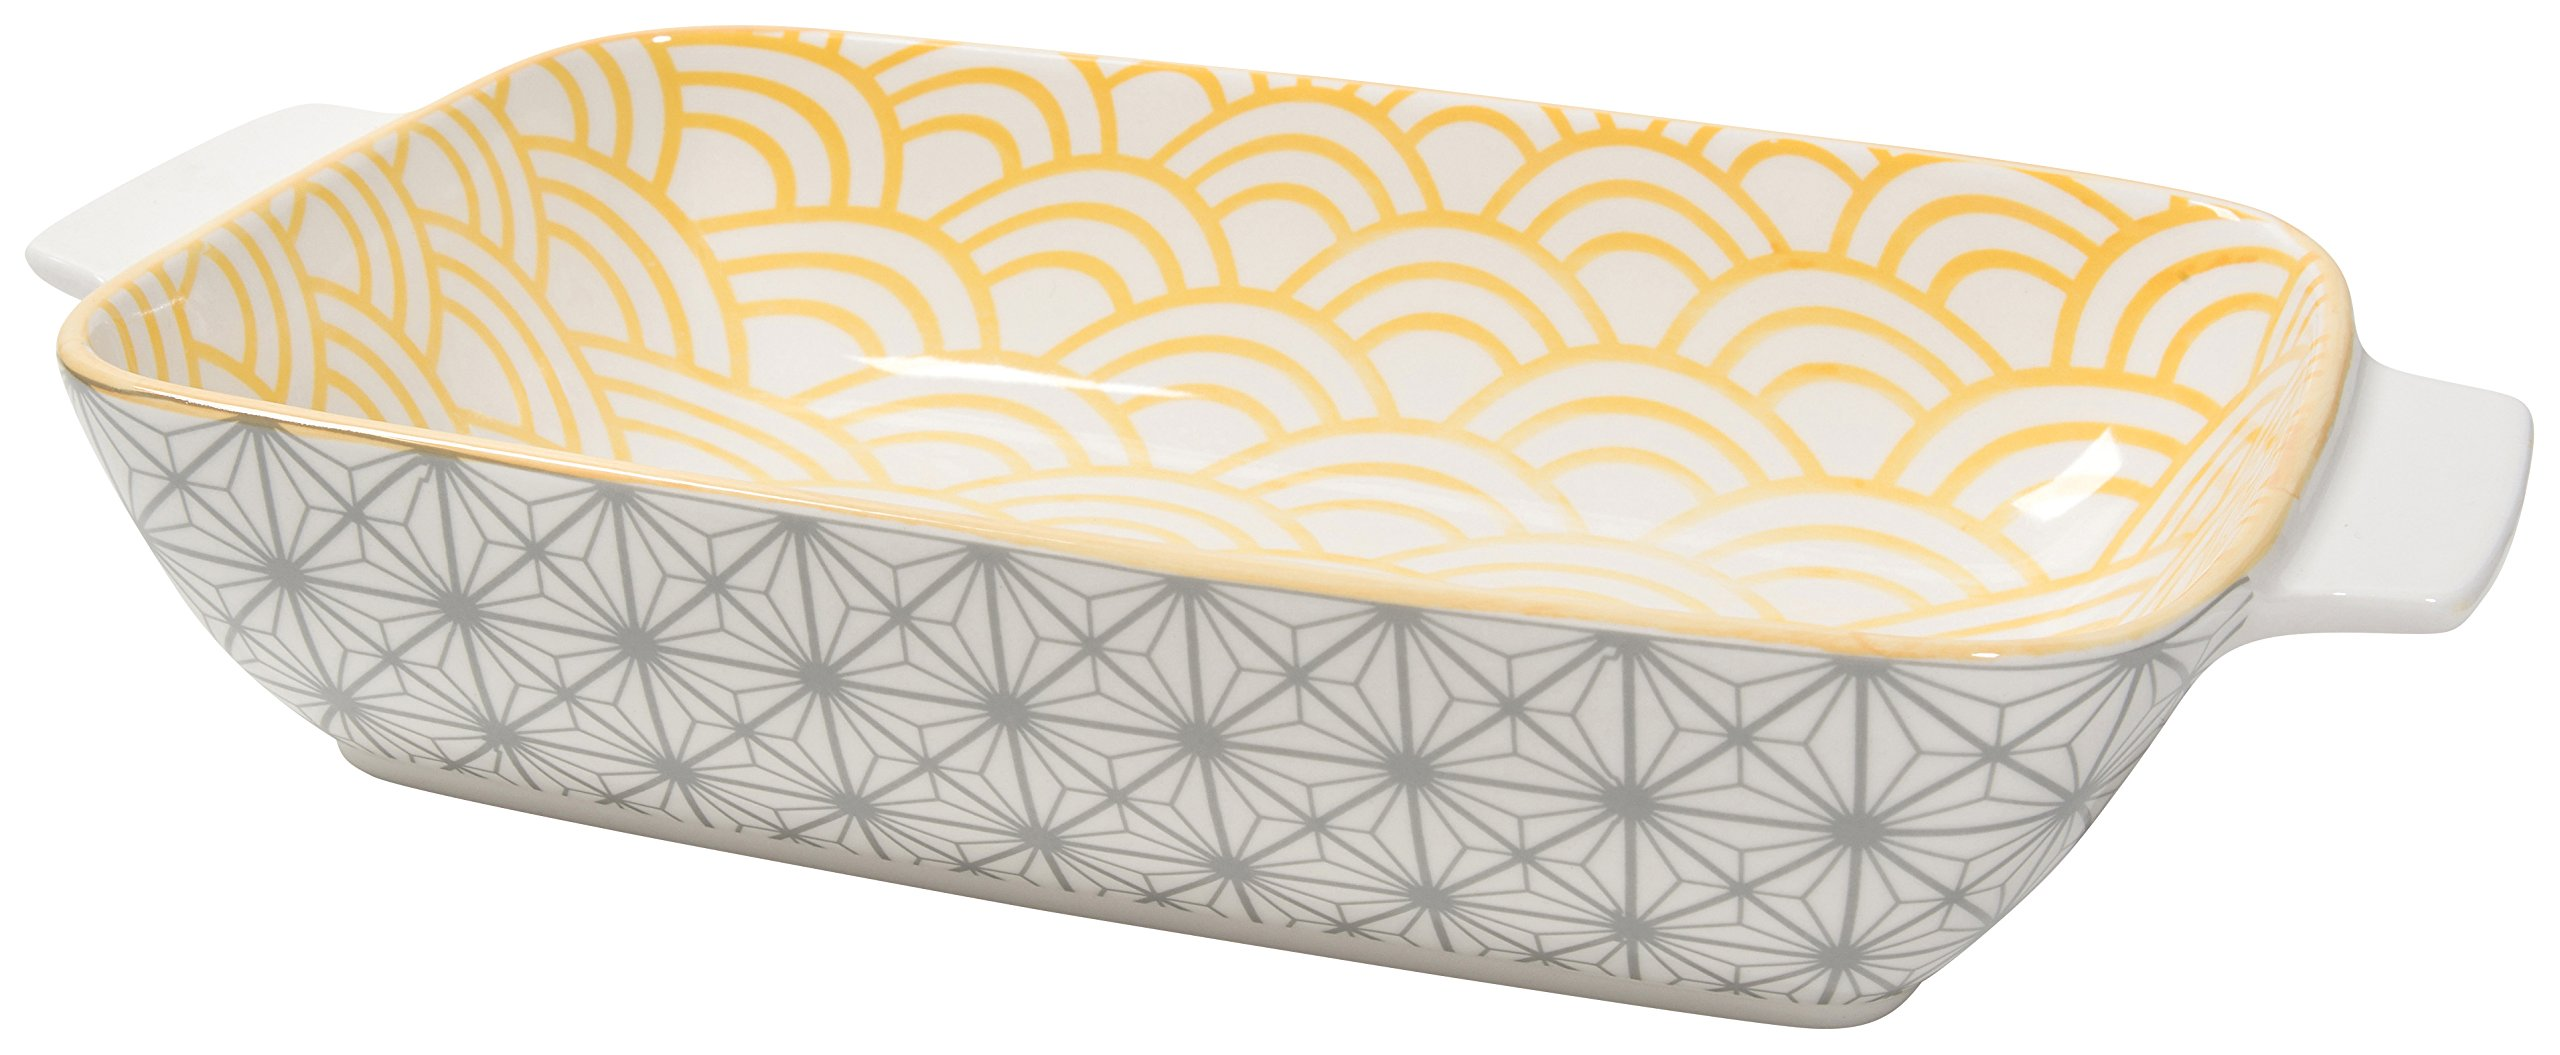 Now Designs Stamped Baking Dish, 7.5 inches by 11 Inches, Sunrock Design